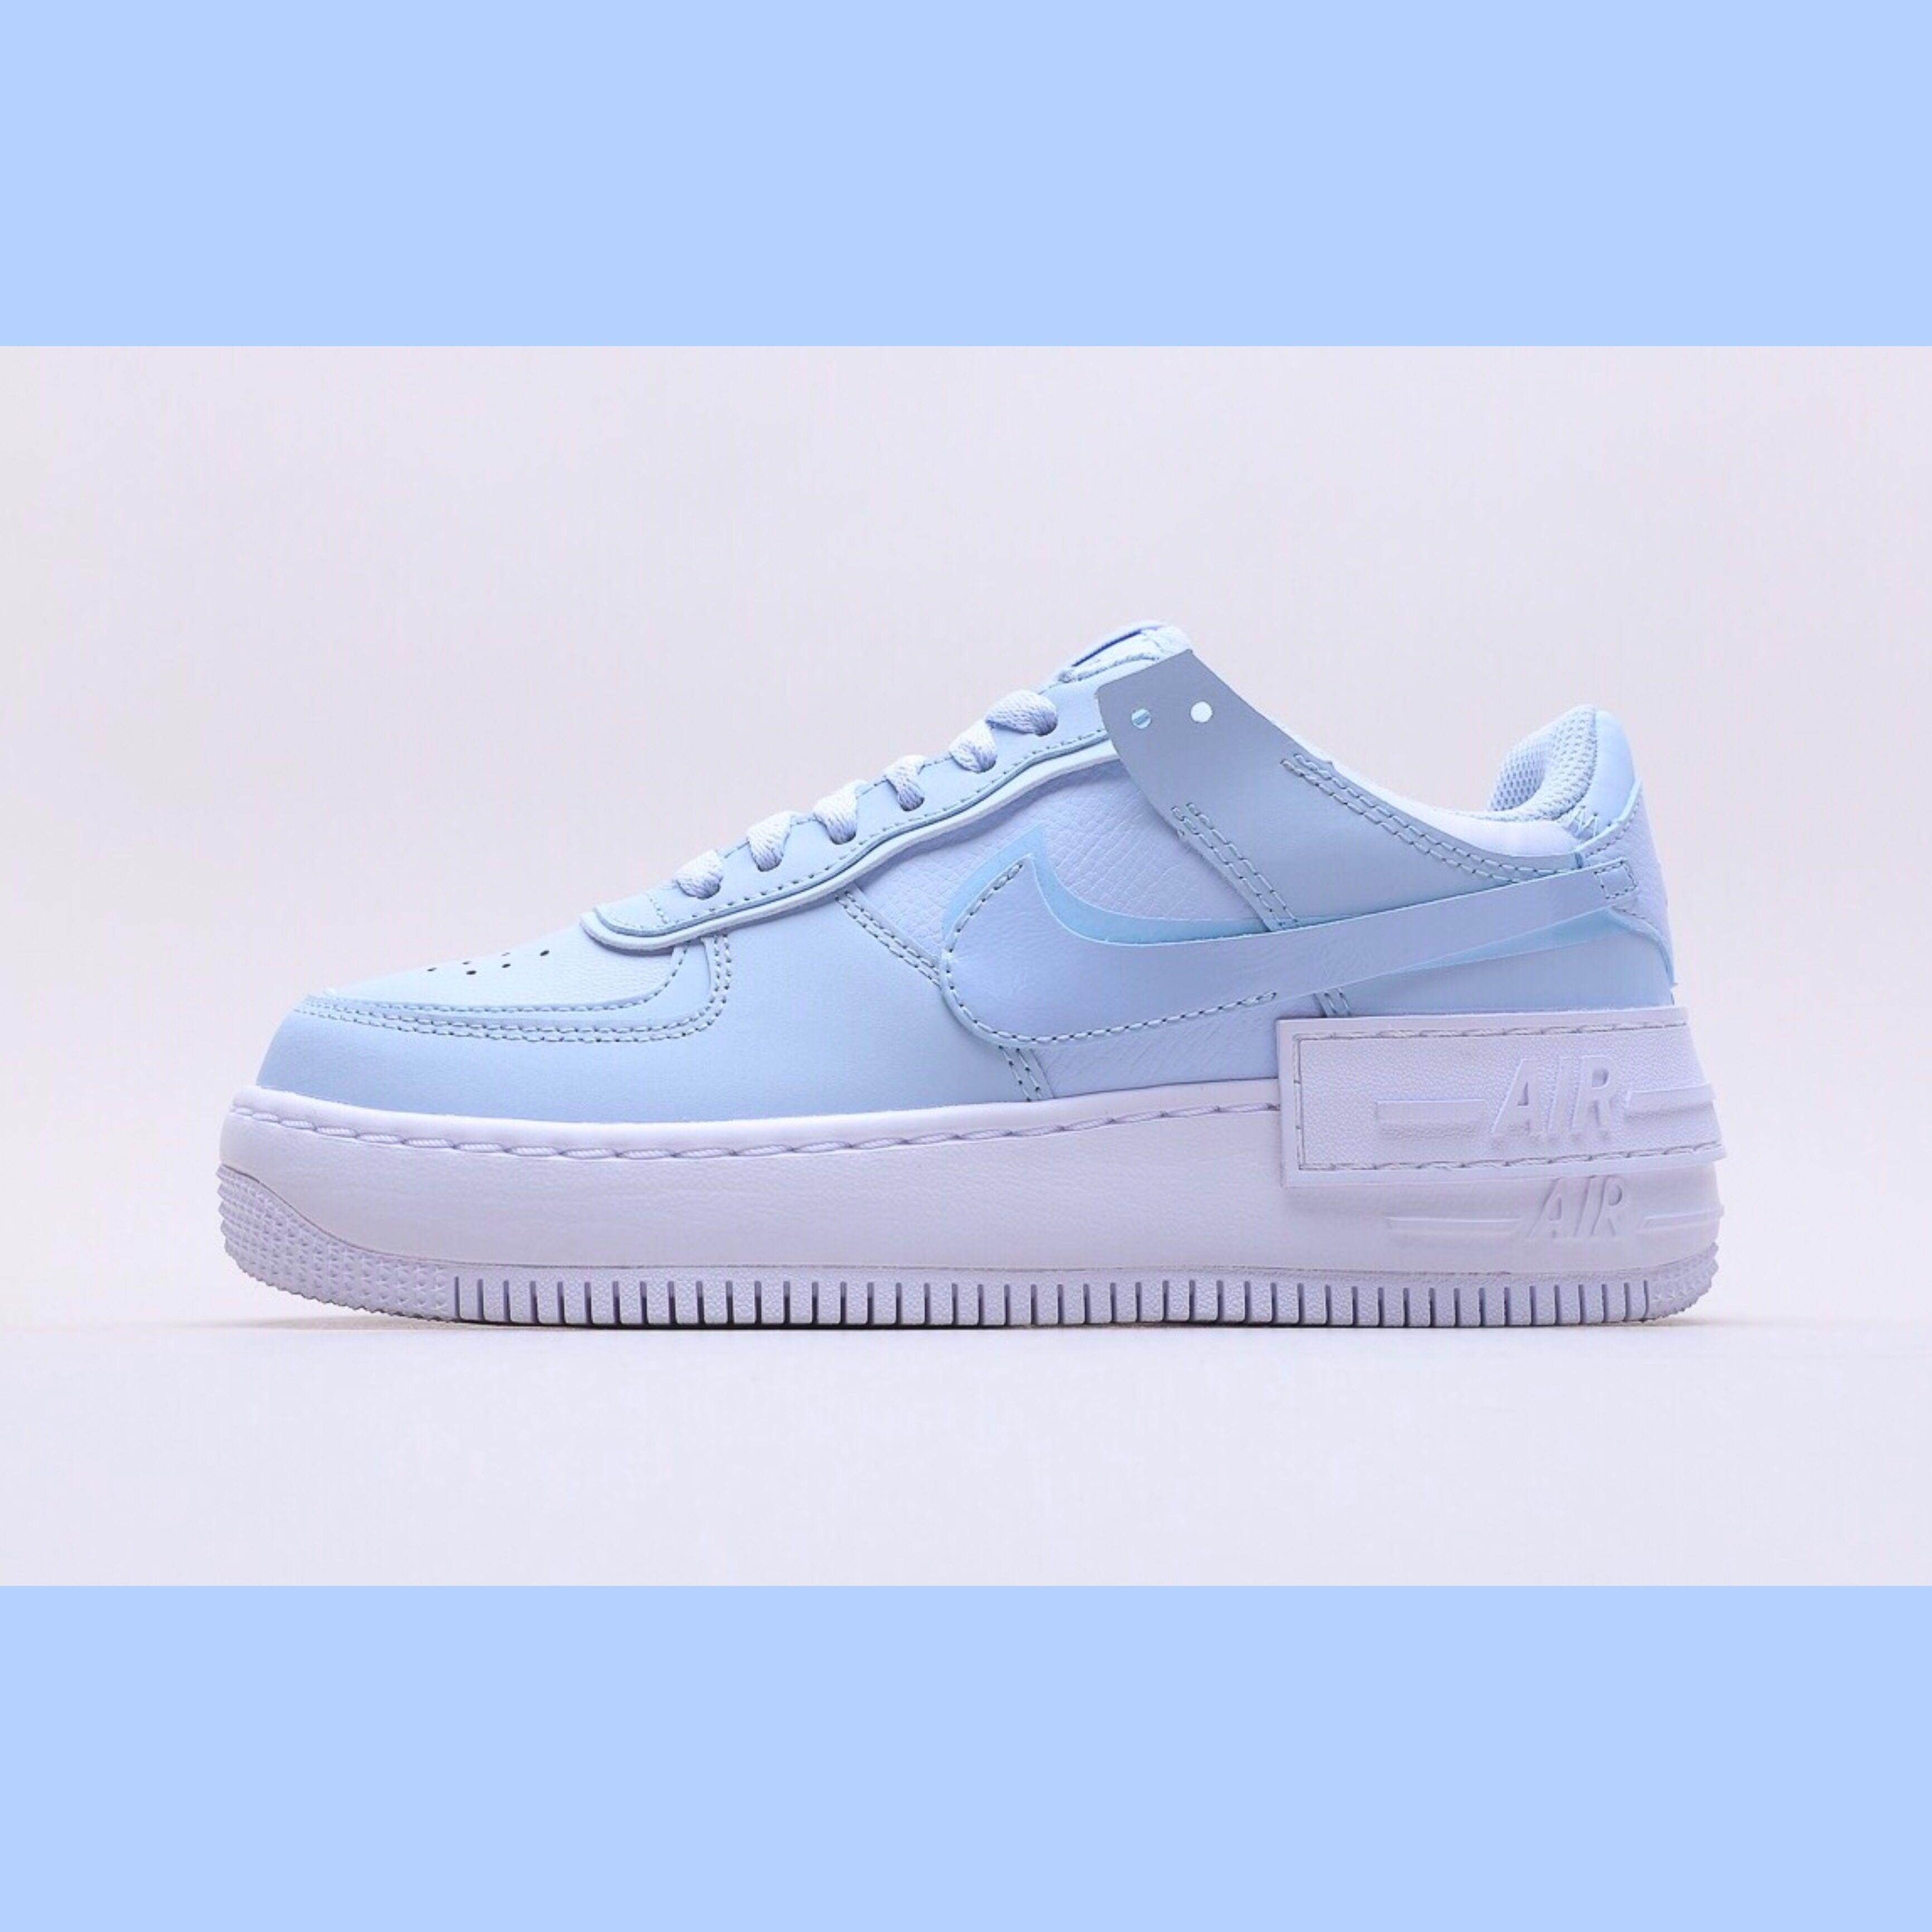 Nike Air Force 1 Shadow Hydrogen Blue Women S Fashion Shoes Sneakers On Carousell Nike air force 1 low shadow co. sgd